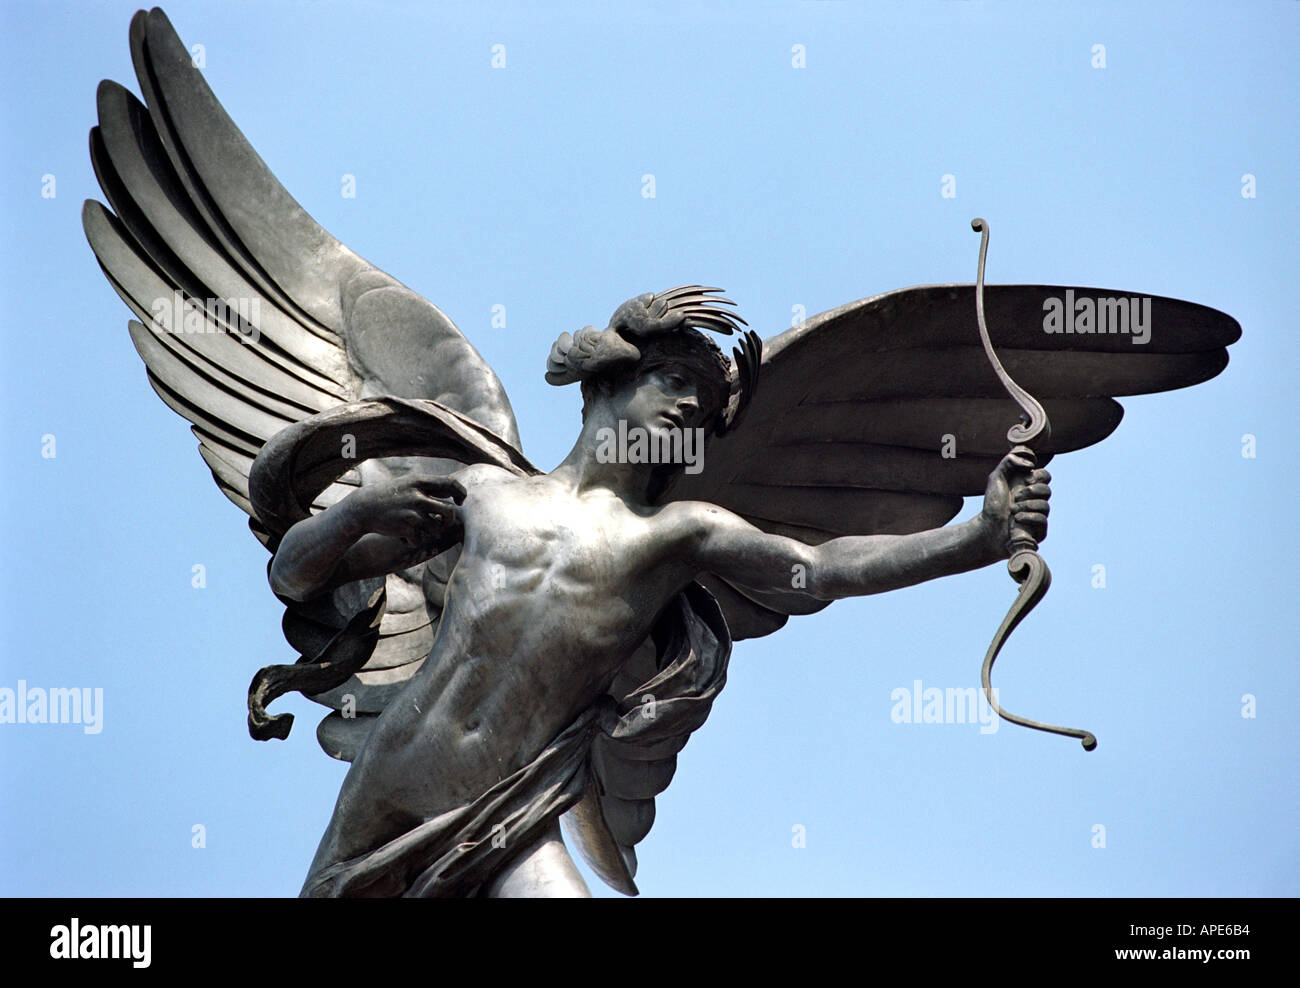 The statue of Eros in Piccadilly Circus in London England UK - Stock Image